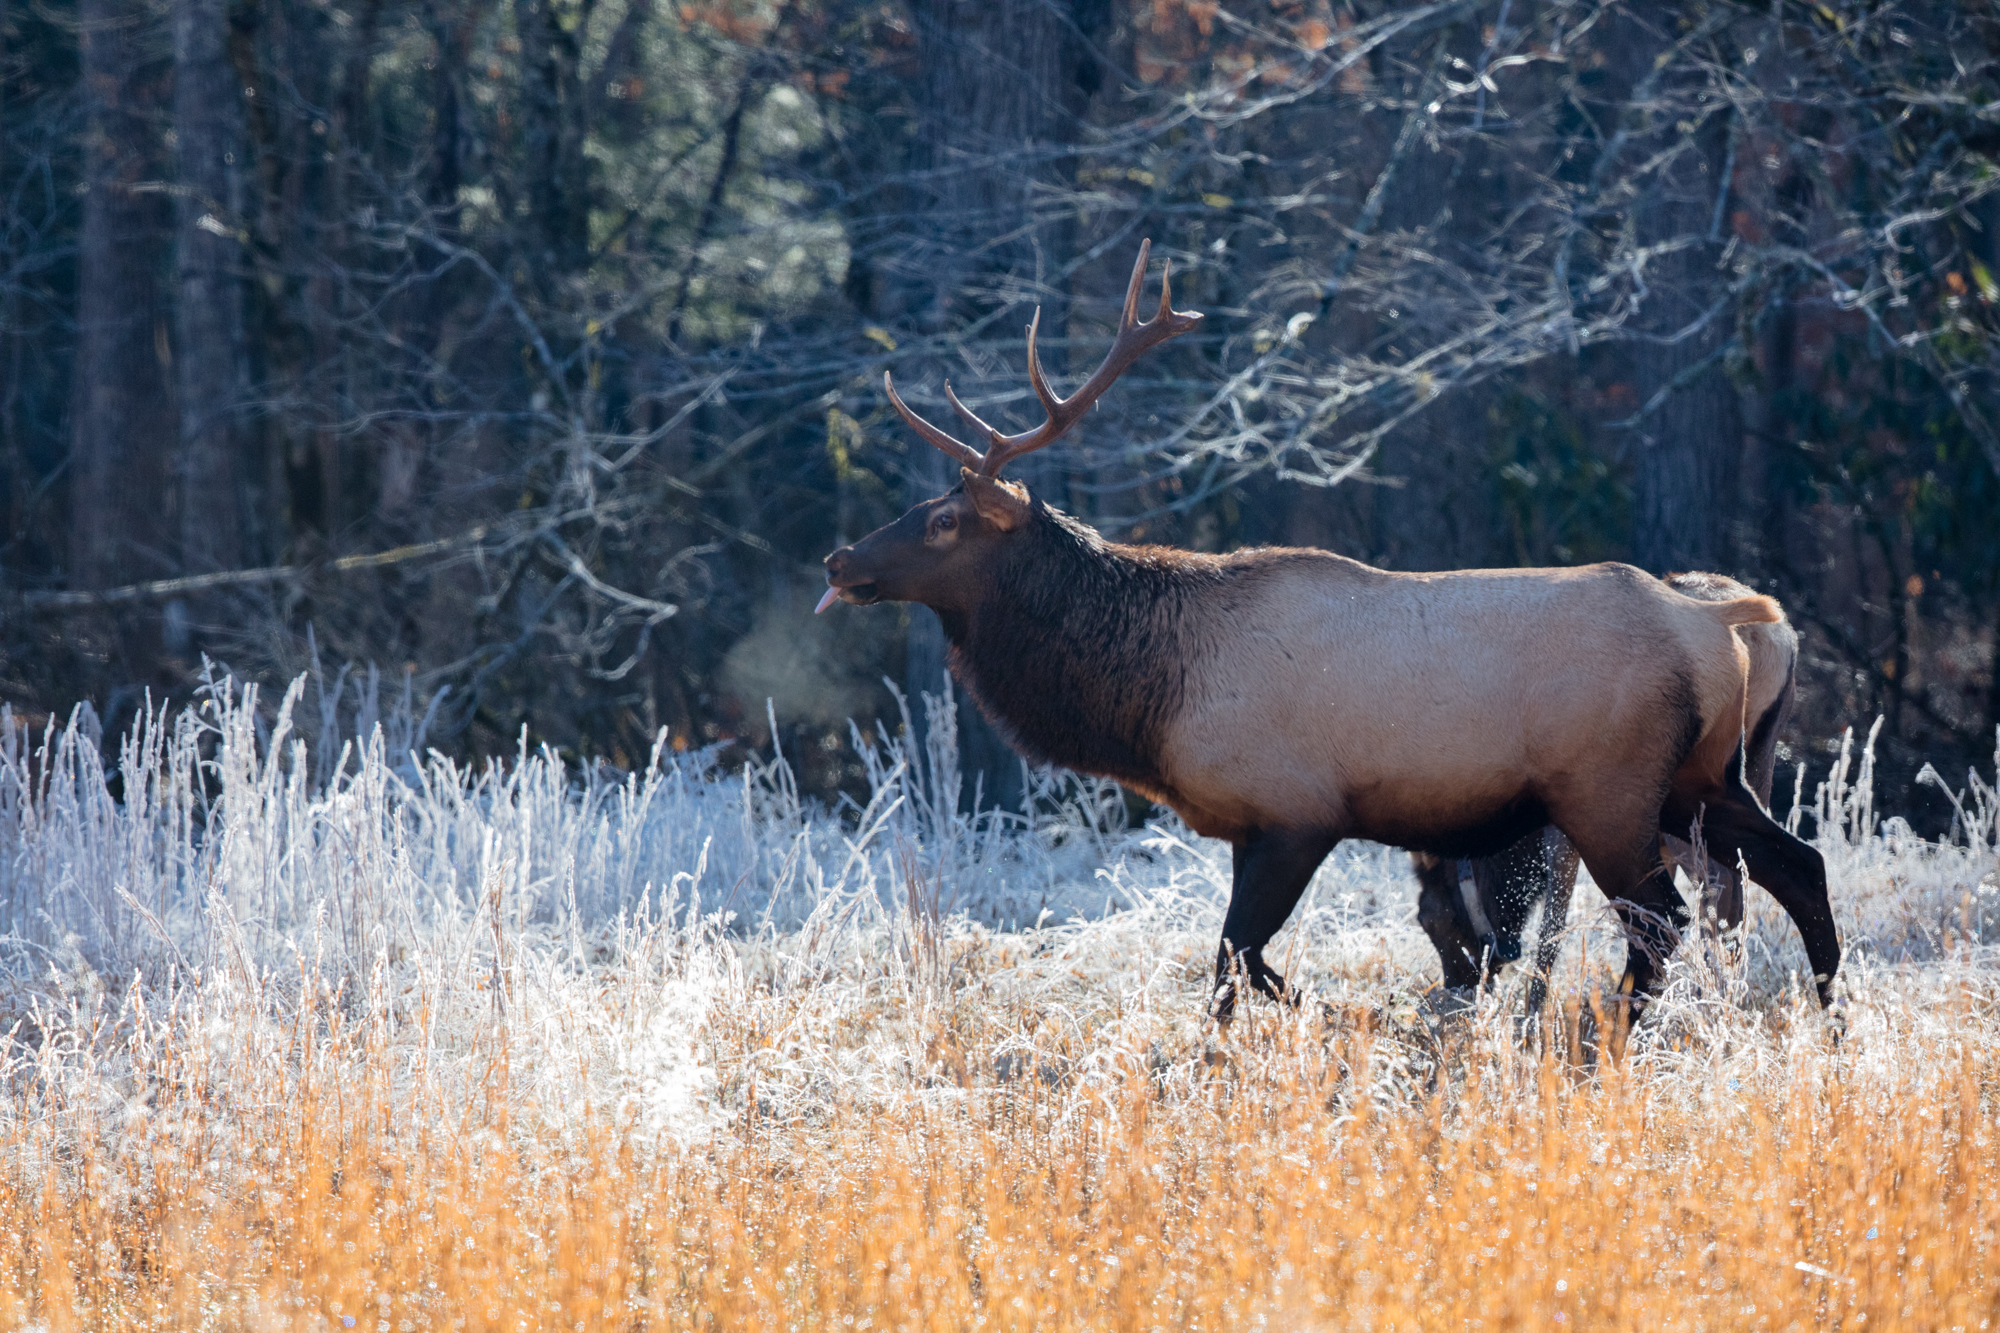 Dominant male elk continuously testing the air, warm breath fogging up on a relatively cold and frosty morning in Cataloochee Valley.